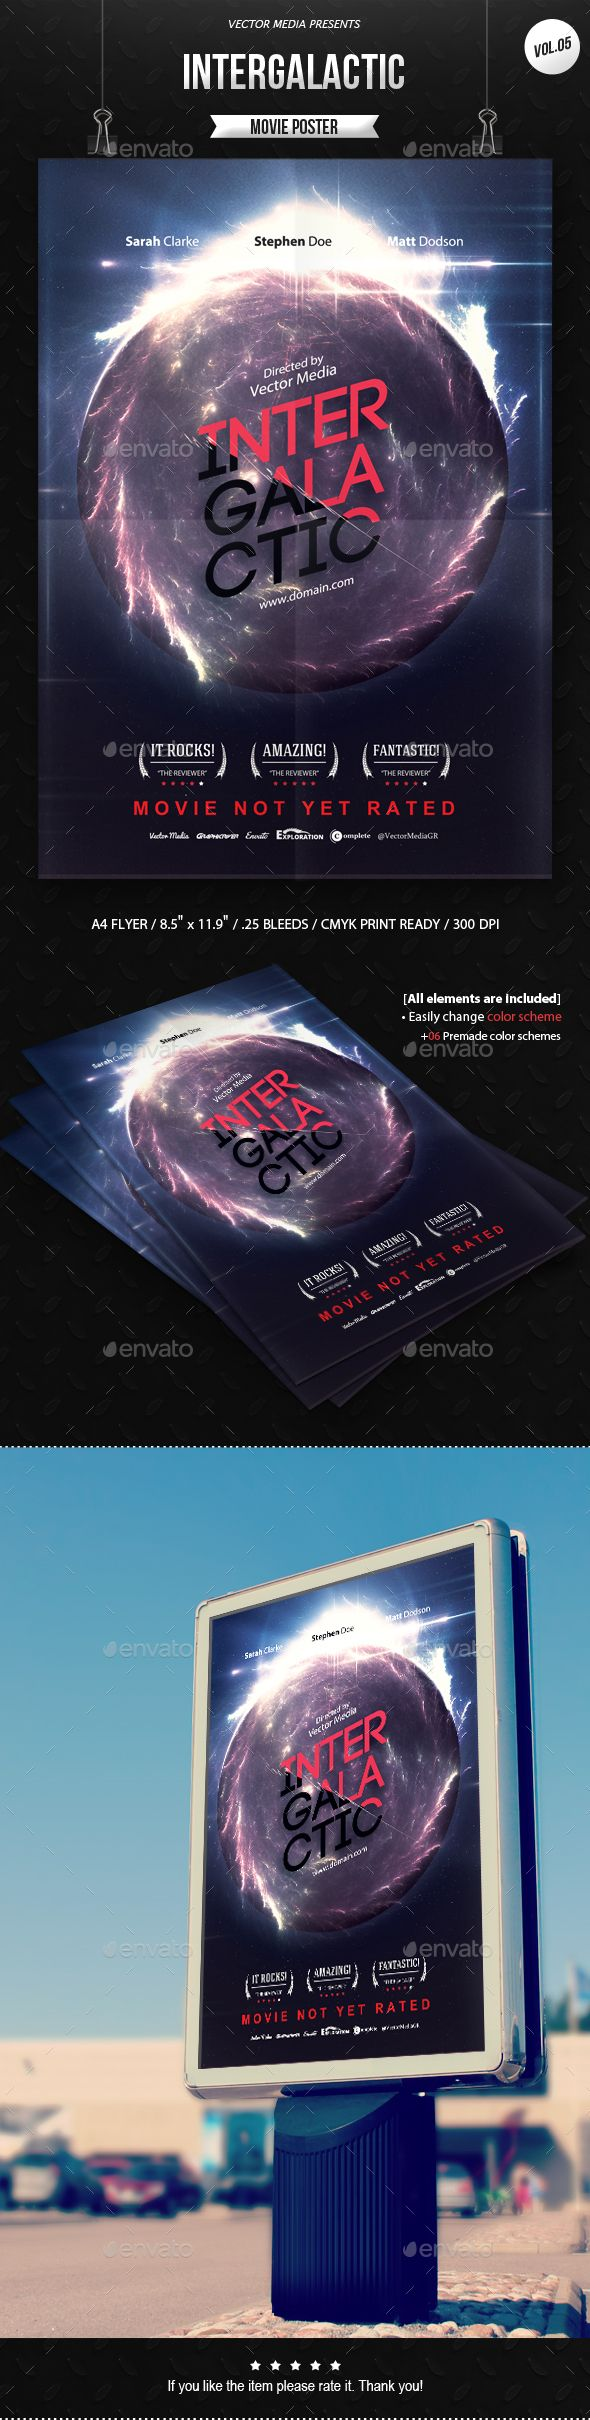 Intergalactic - Movie Poster Template PSD. Download here: http://graphicriver.net/item/intergalactic-movie-poster-vol5/16038126?ref=ksioks